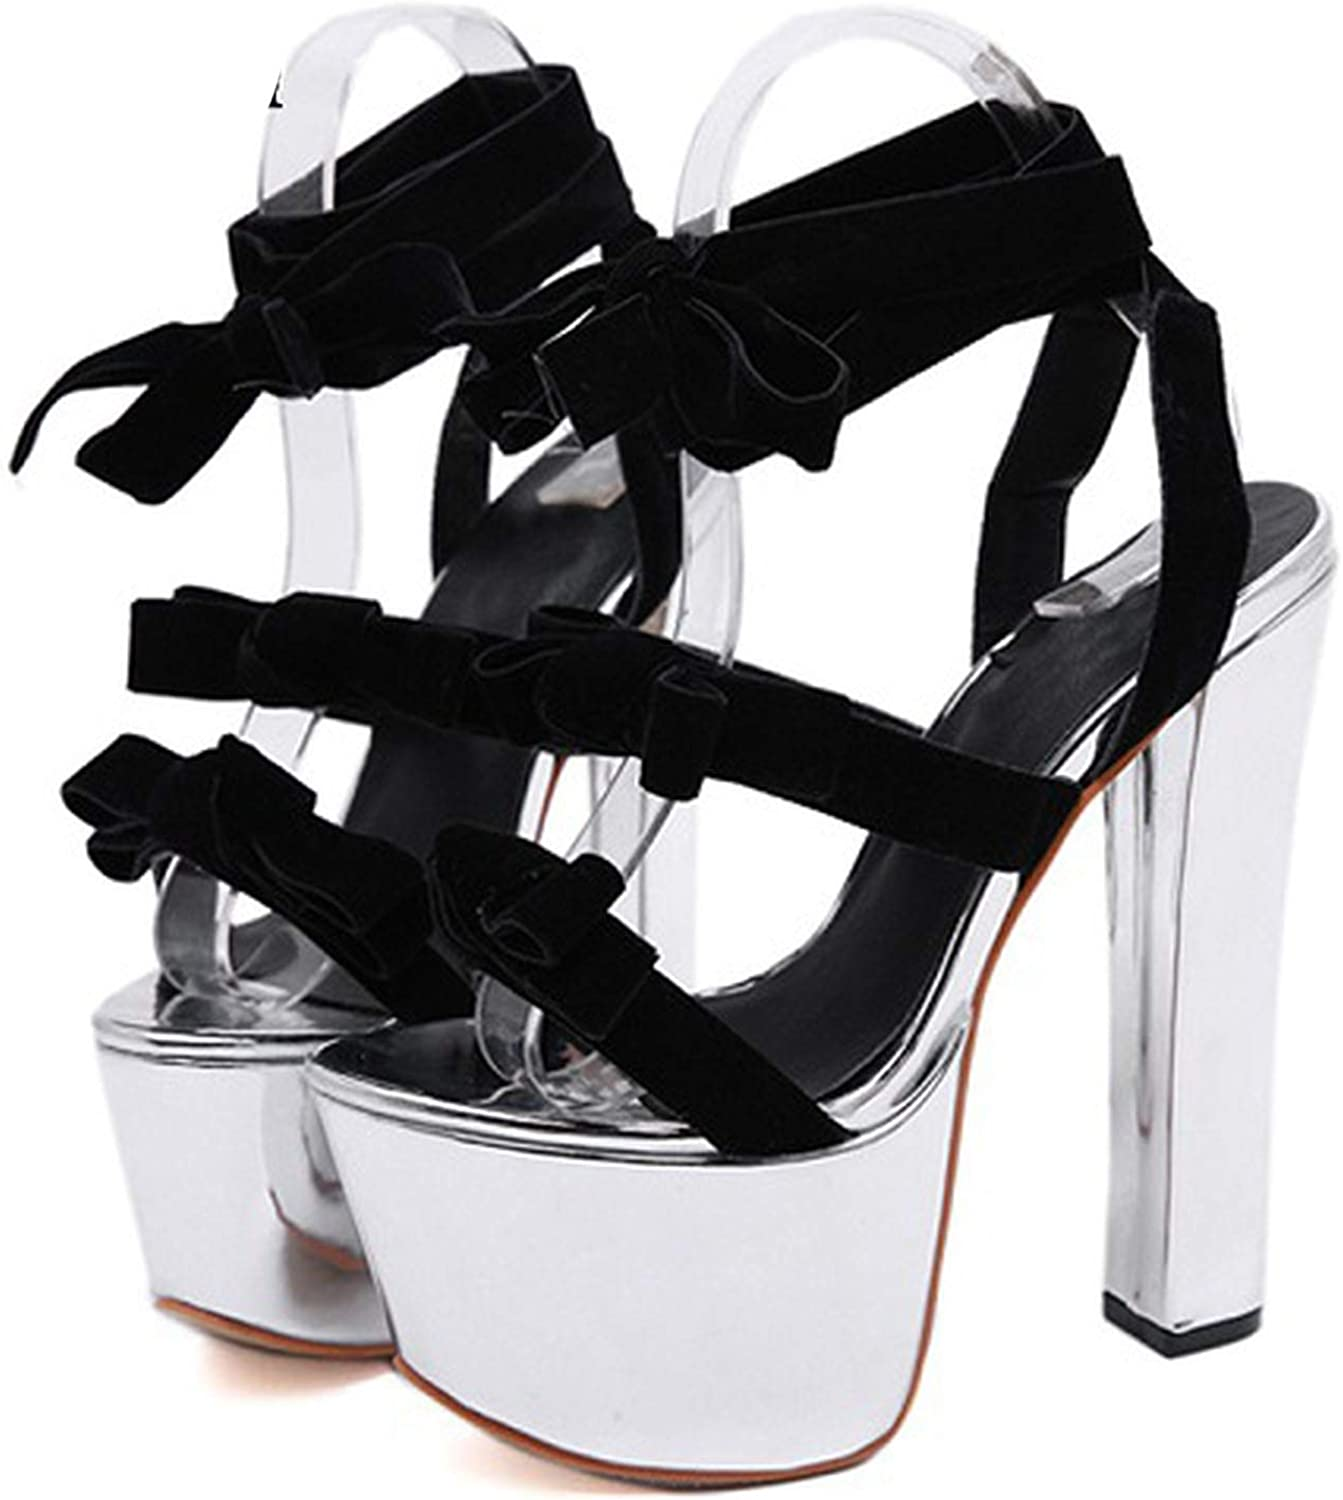 HuangKang Sexy Silver Sandals Platform 2019 New Summer Females Extreme High Heels Lace-Up Wedding Dress shoes Ladies